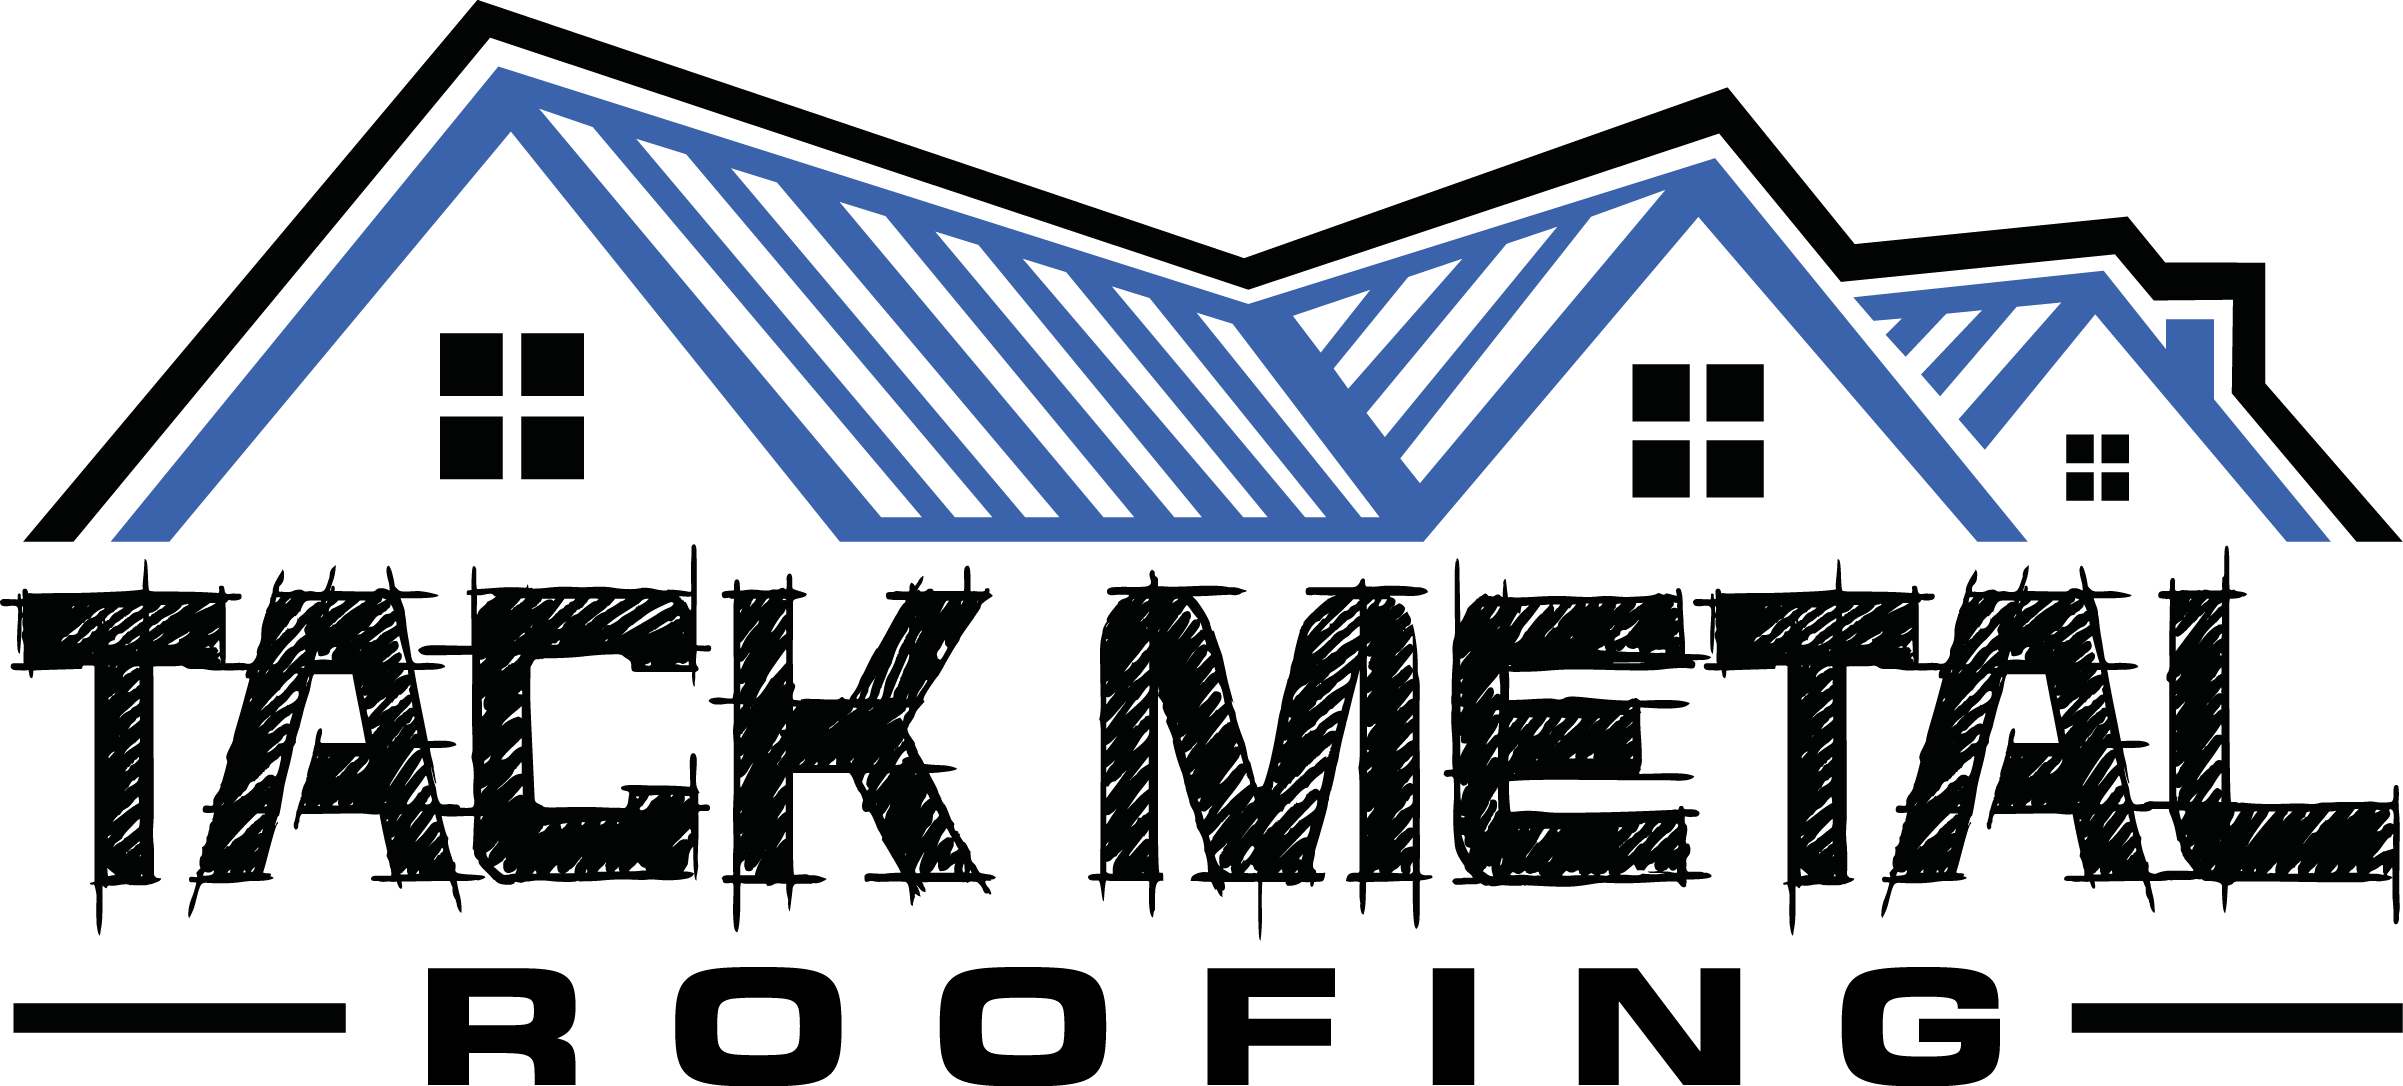 Roofing clipart. Tack metal mfg frewsburg